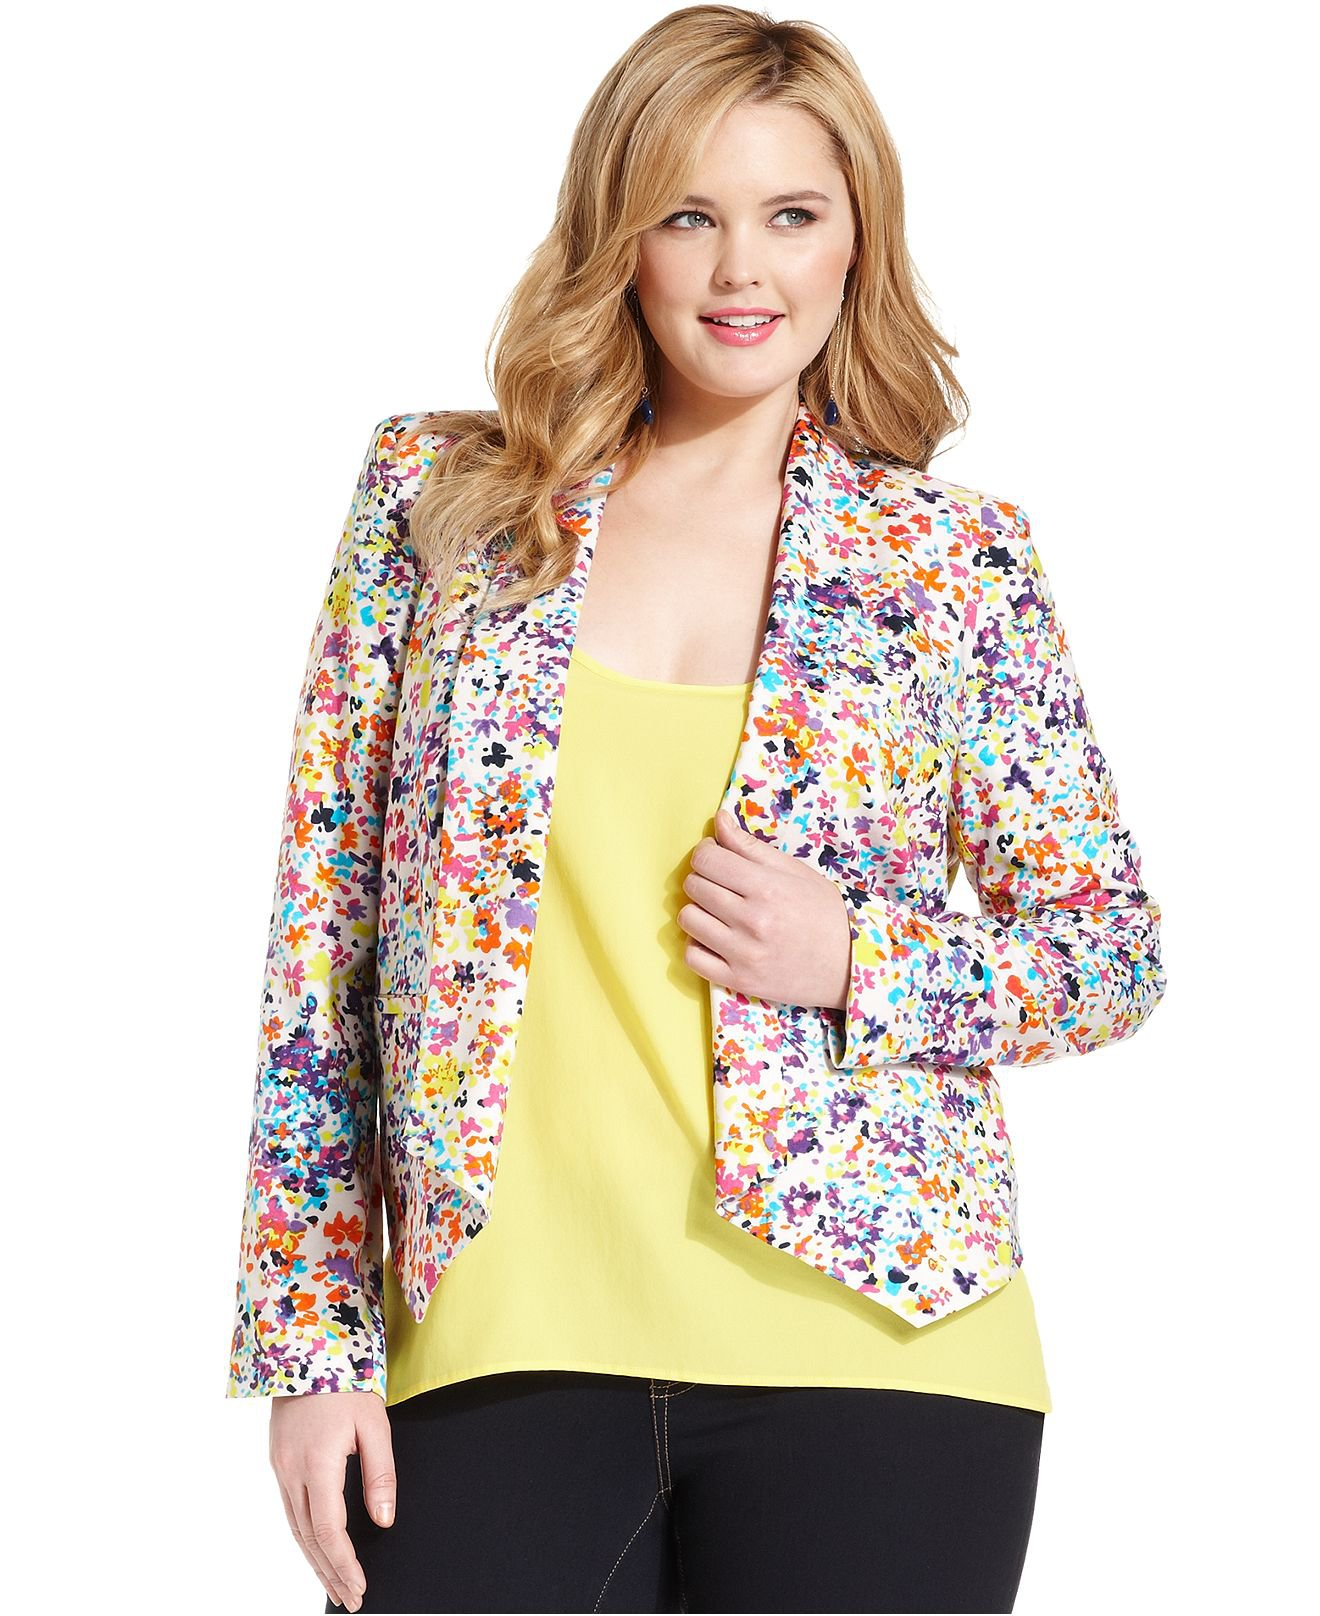 Junior Plus Size Blazers 5 Reviews. Here magyc.cf shows customers a fashion collection of current junior plus size magyc.cf can find many great items. They all have high quality and reasonable price. You can get big discount sometimes, because we always do promotions. If you need junior plus size blazers,come here to choose.